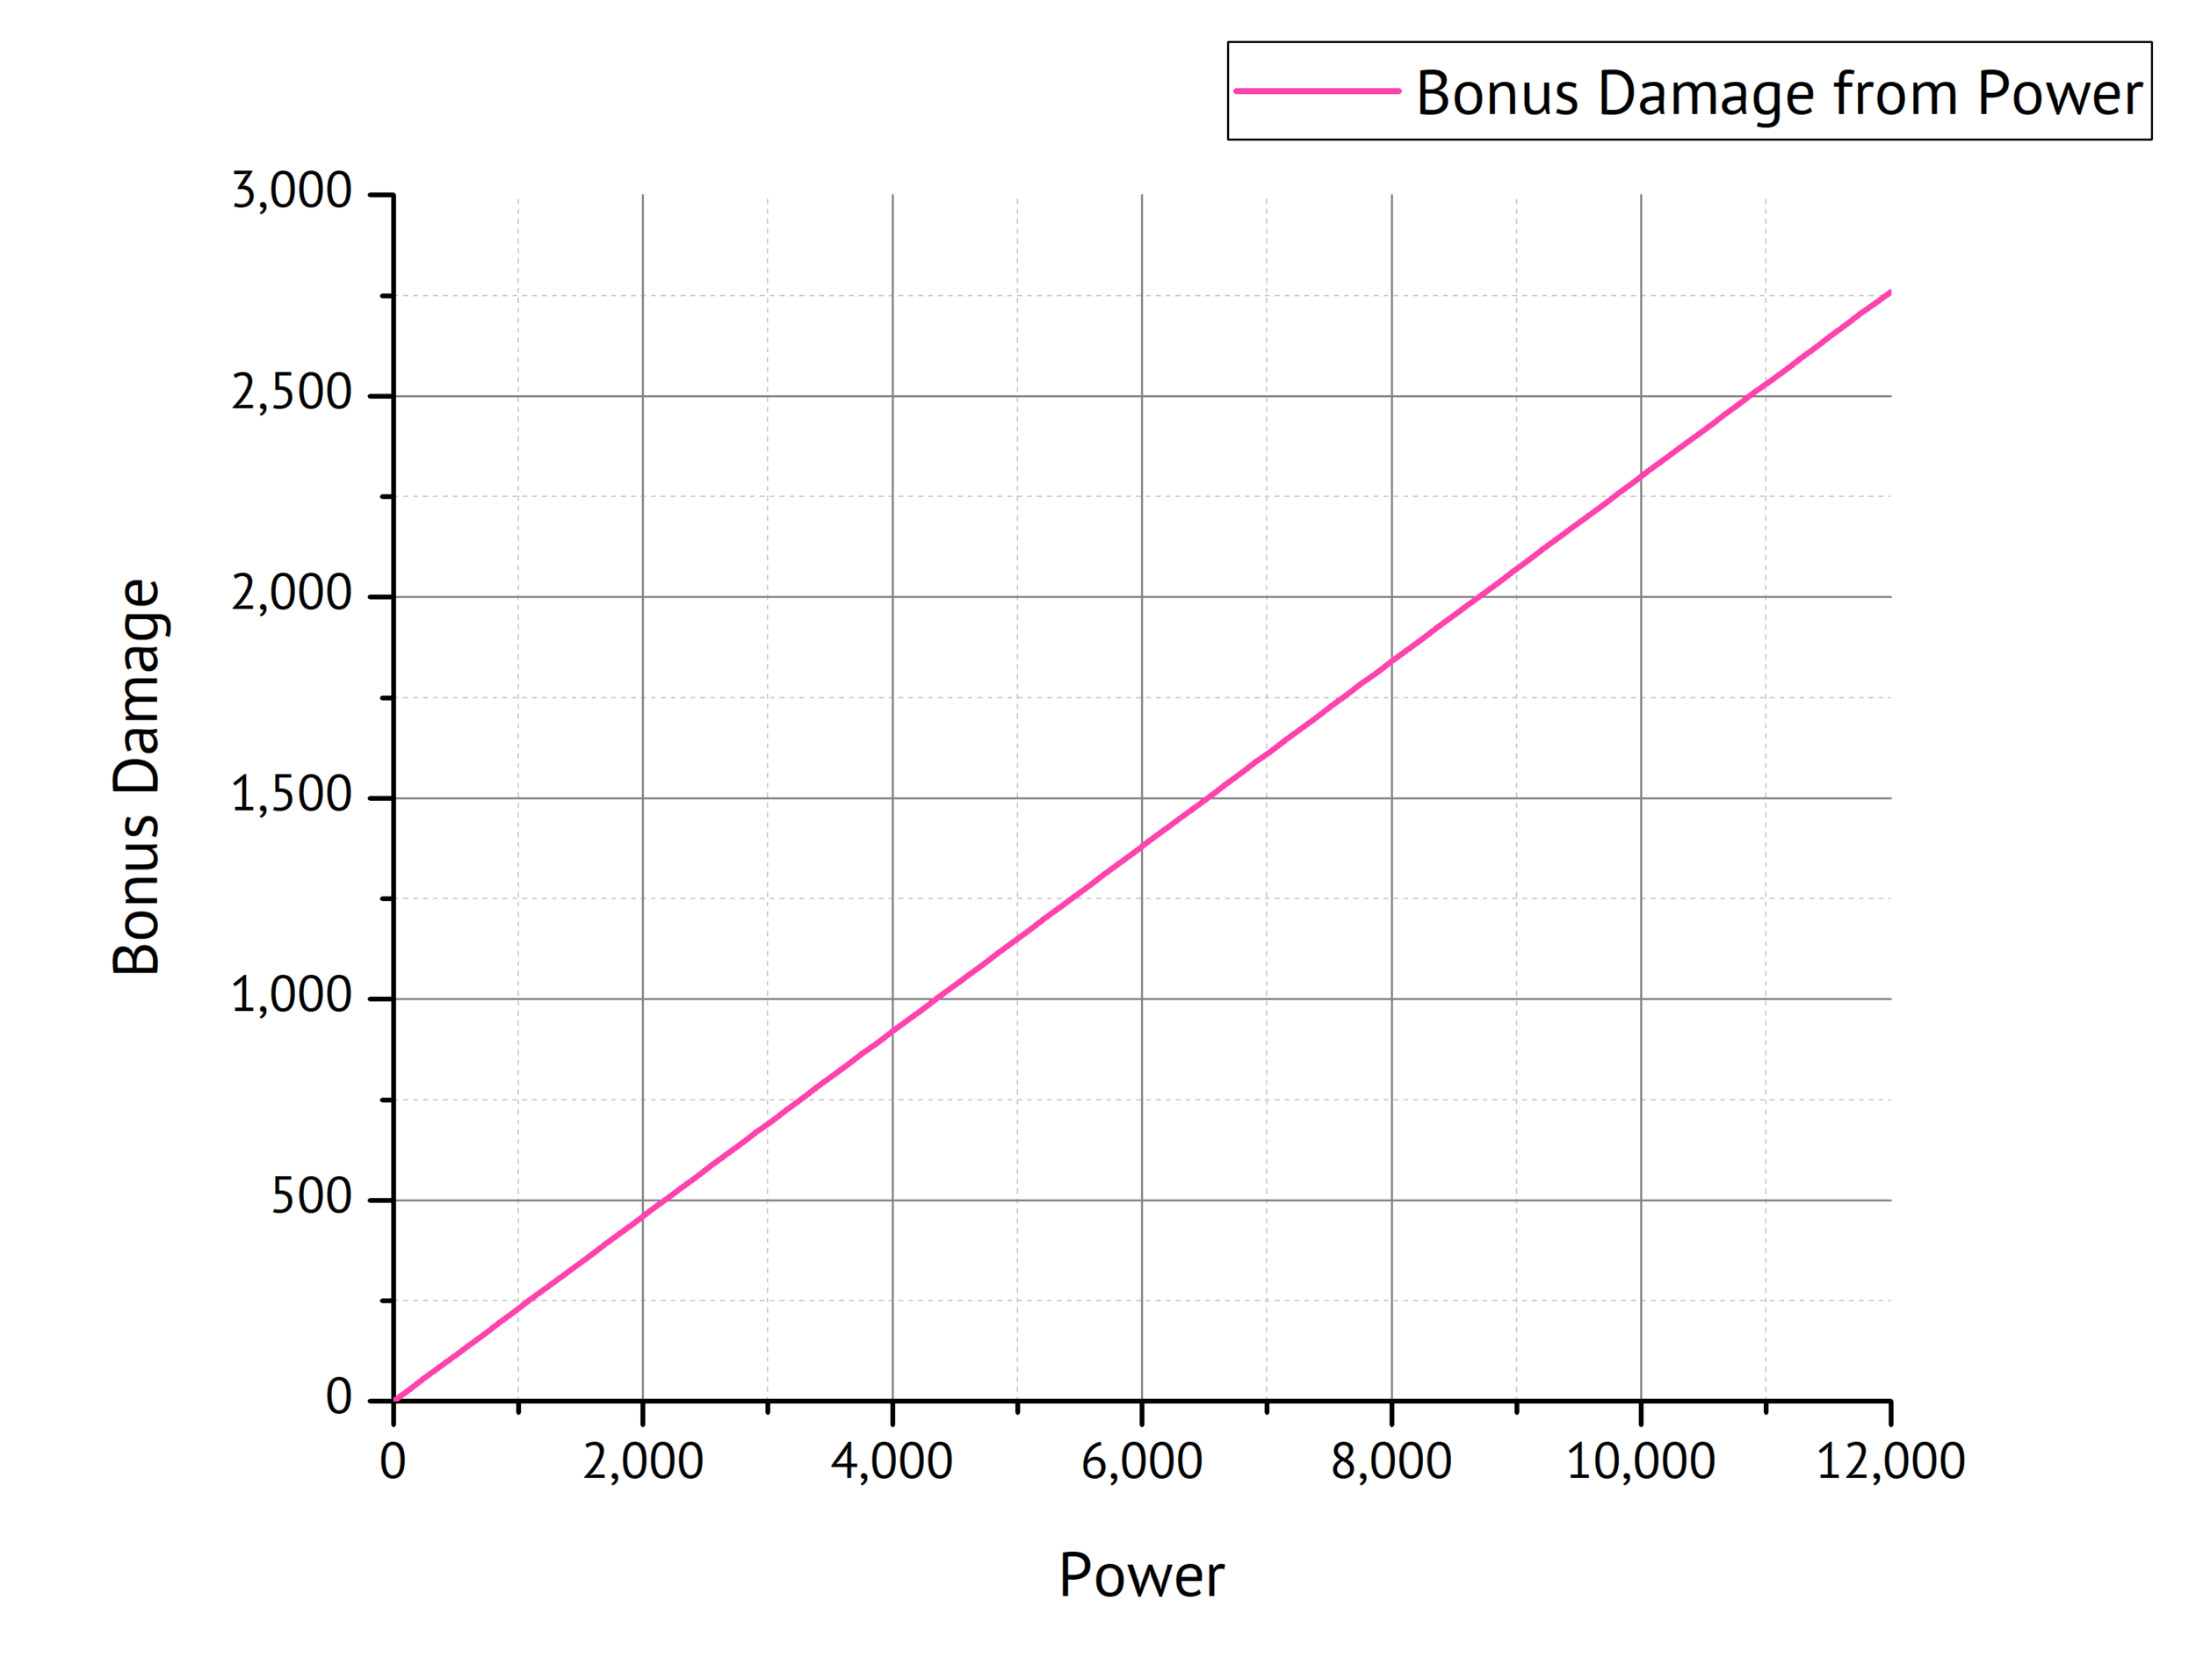 Fig. 5: Bonus Damage as a function of Power.